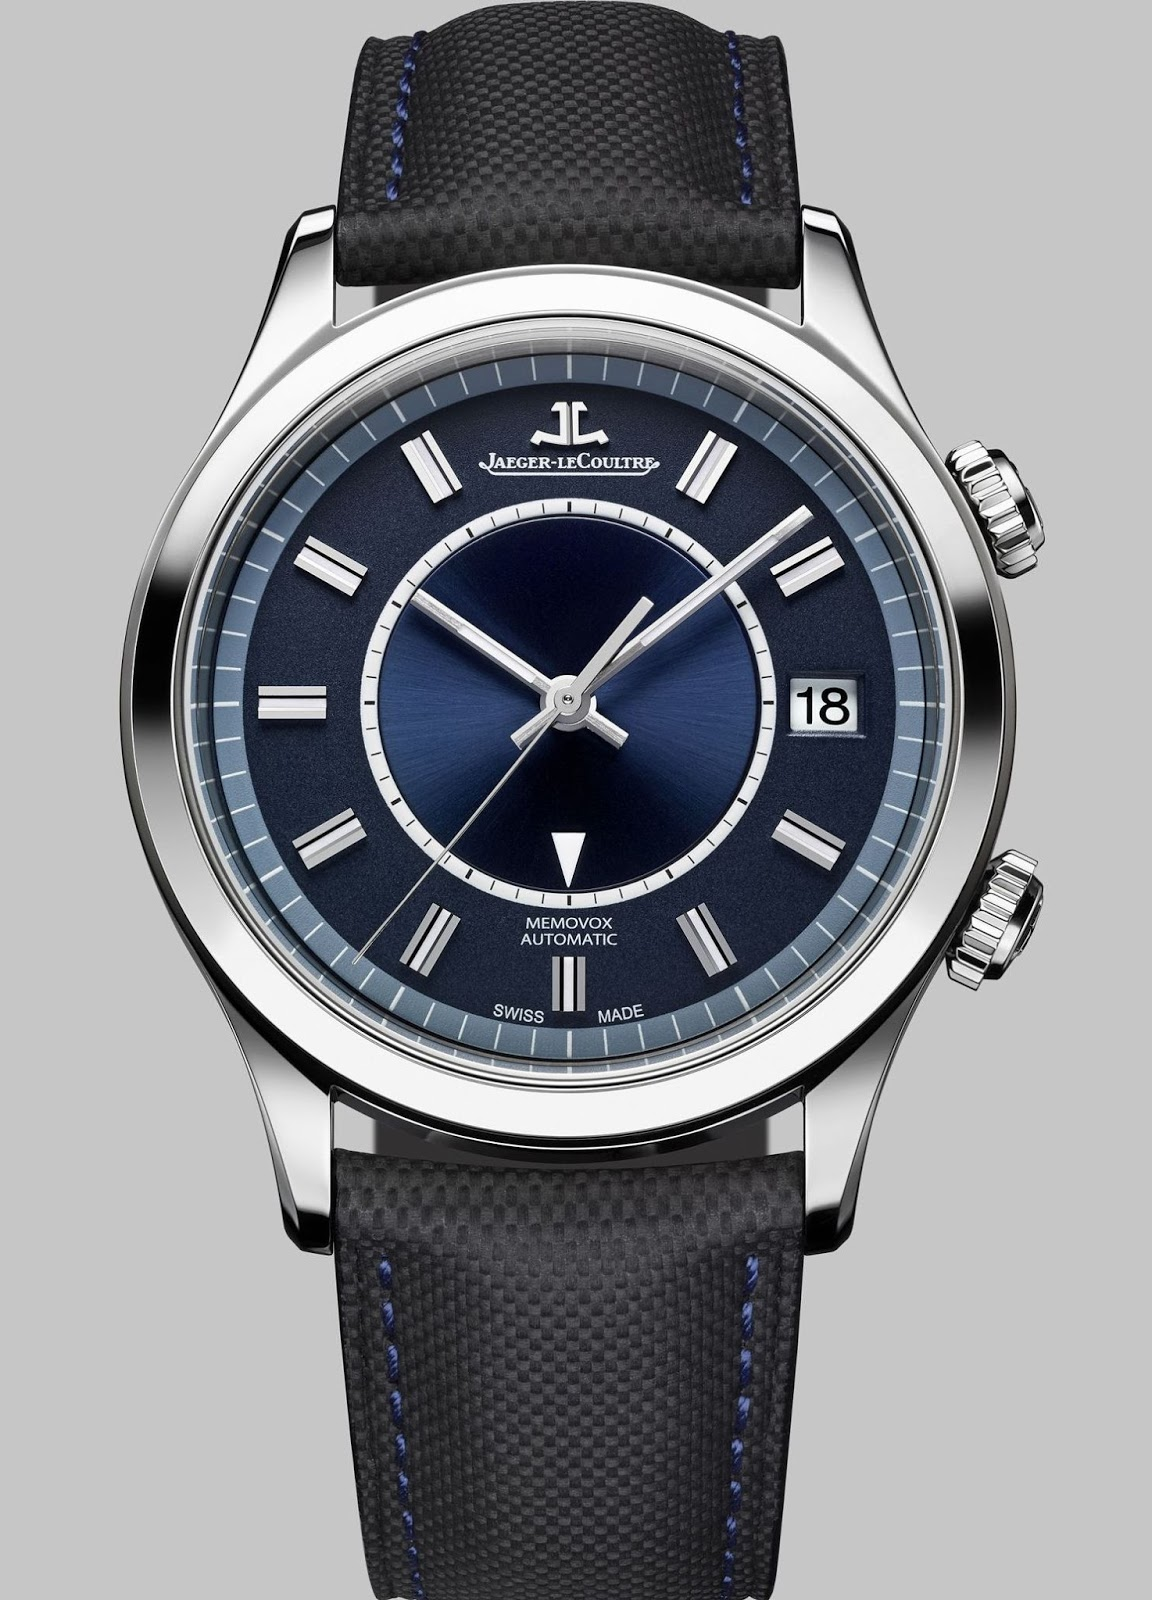 eef681be7a5 To create this special edition Jaeger-LeCoultre s designers sought  inspiration in a watch dating back to the 1970s